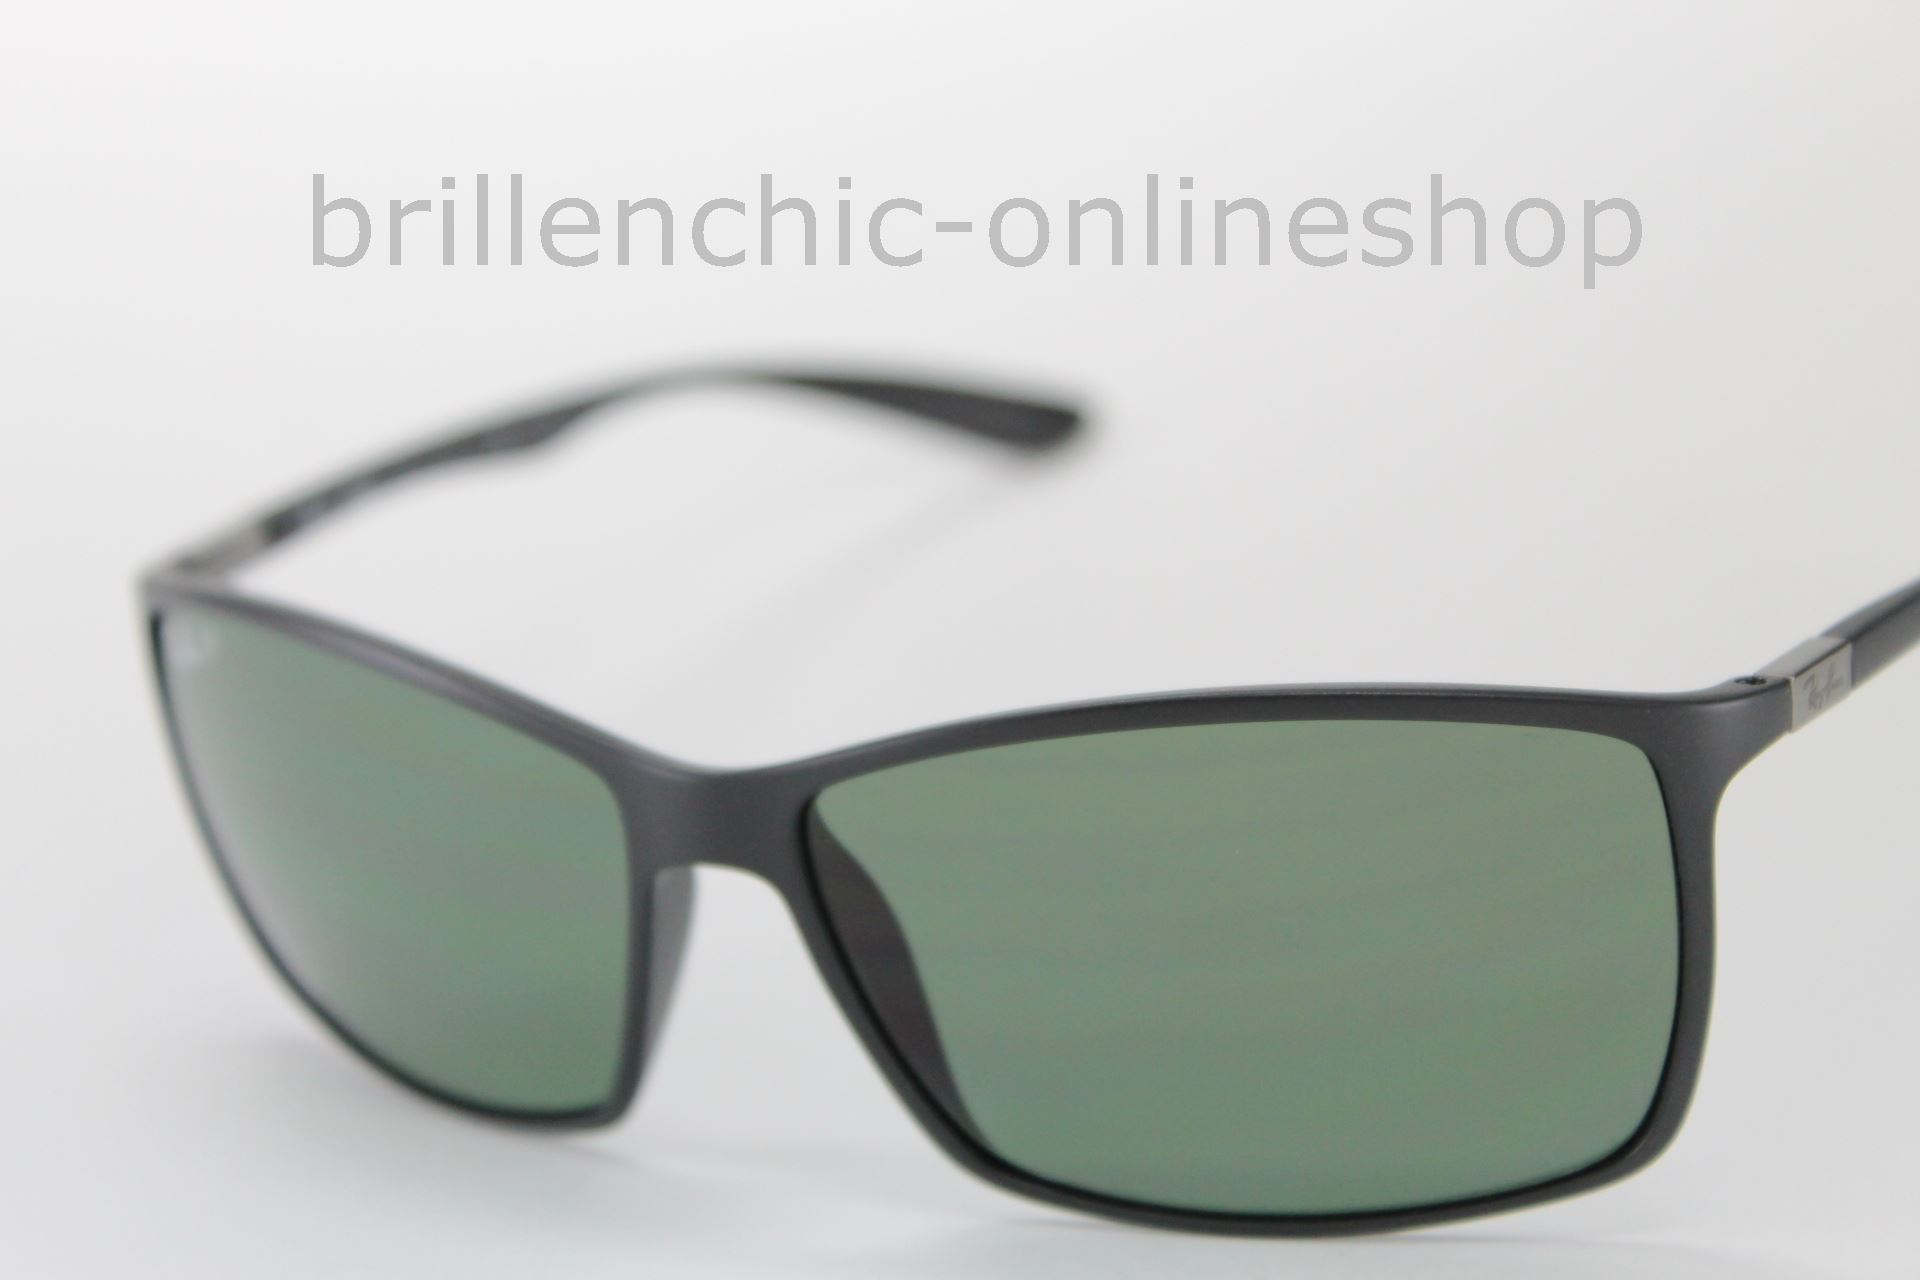 Brillenchic-onlineshop in Berlin - Ray Ban LITEFORCE RB 4179 601S 9A ... ff1a207920